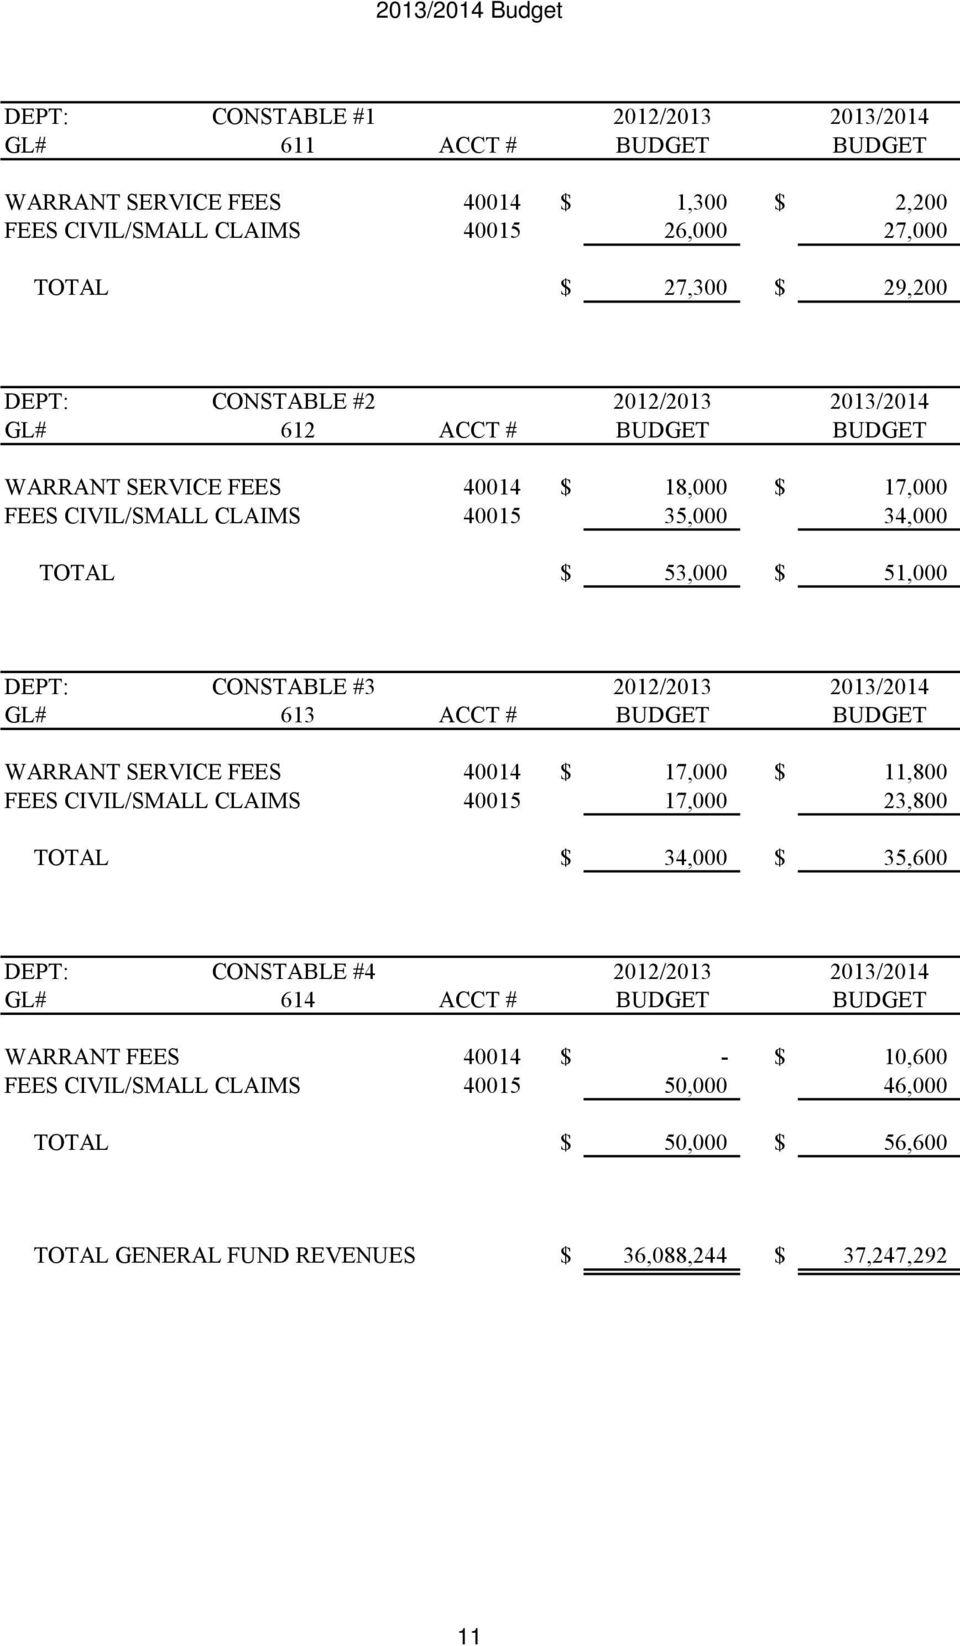 #3 2012/2013 2013/2014 GL# 613 ACCT # BUDGET BUDGET WARRANT SERVICE FEES 40014 $ 17,000 $ 11,800 FEES CIVIL/SMALL CLAIMS 40015 17,000 23,800 TOTAL $ 34,000 $ 35,600 DEPT: CONSTABLE #4